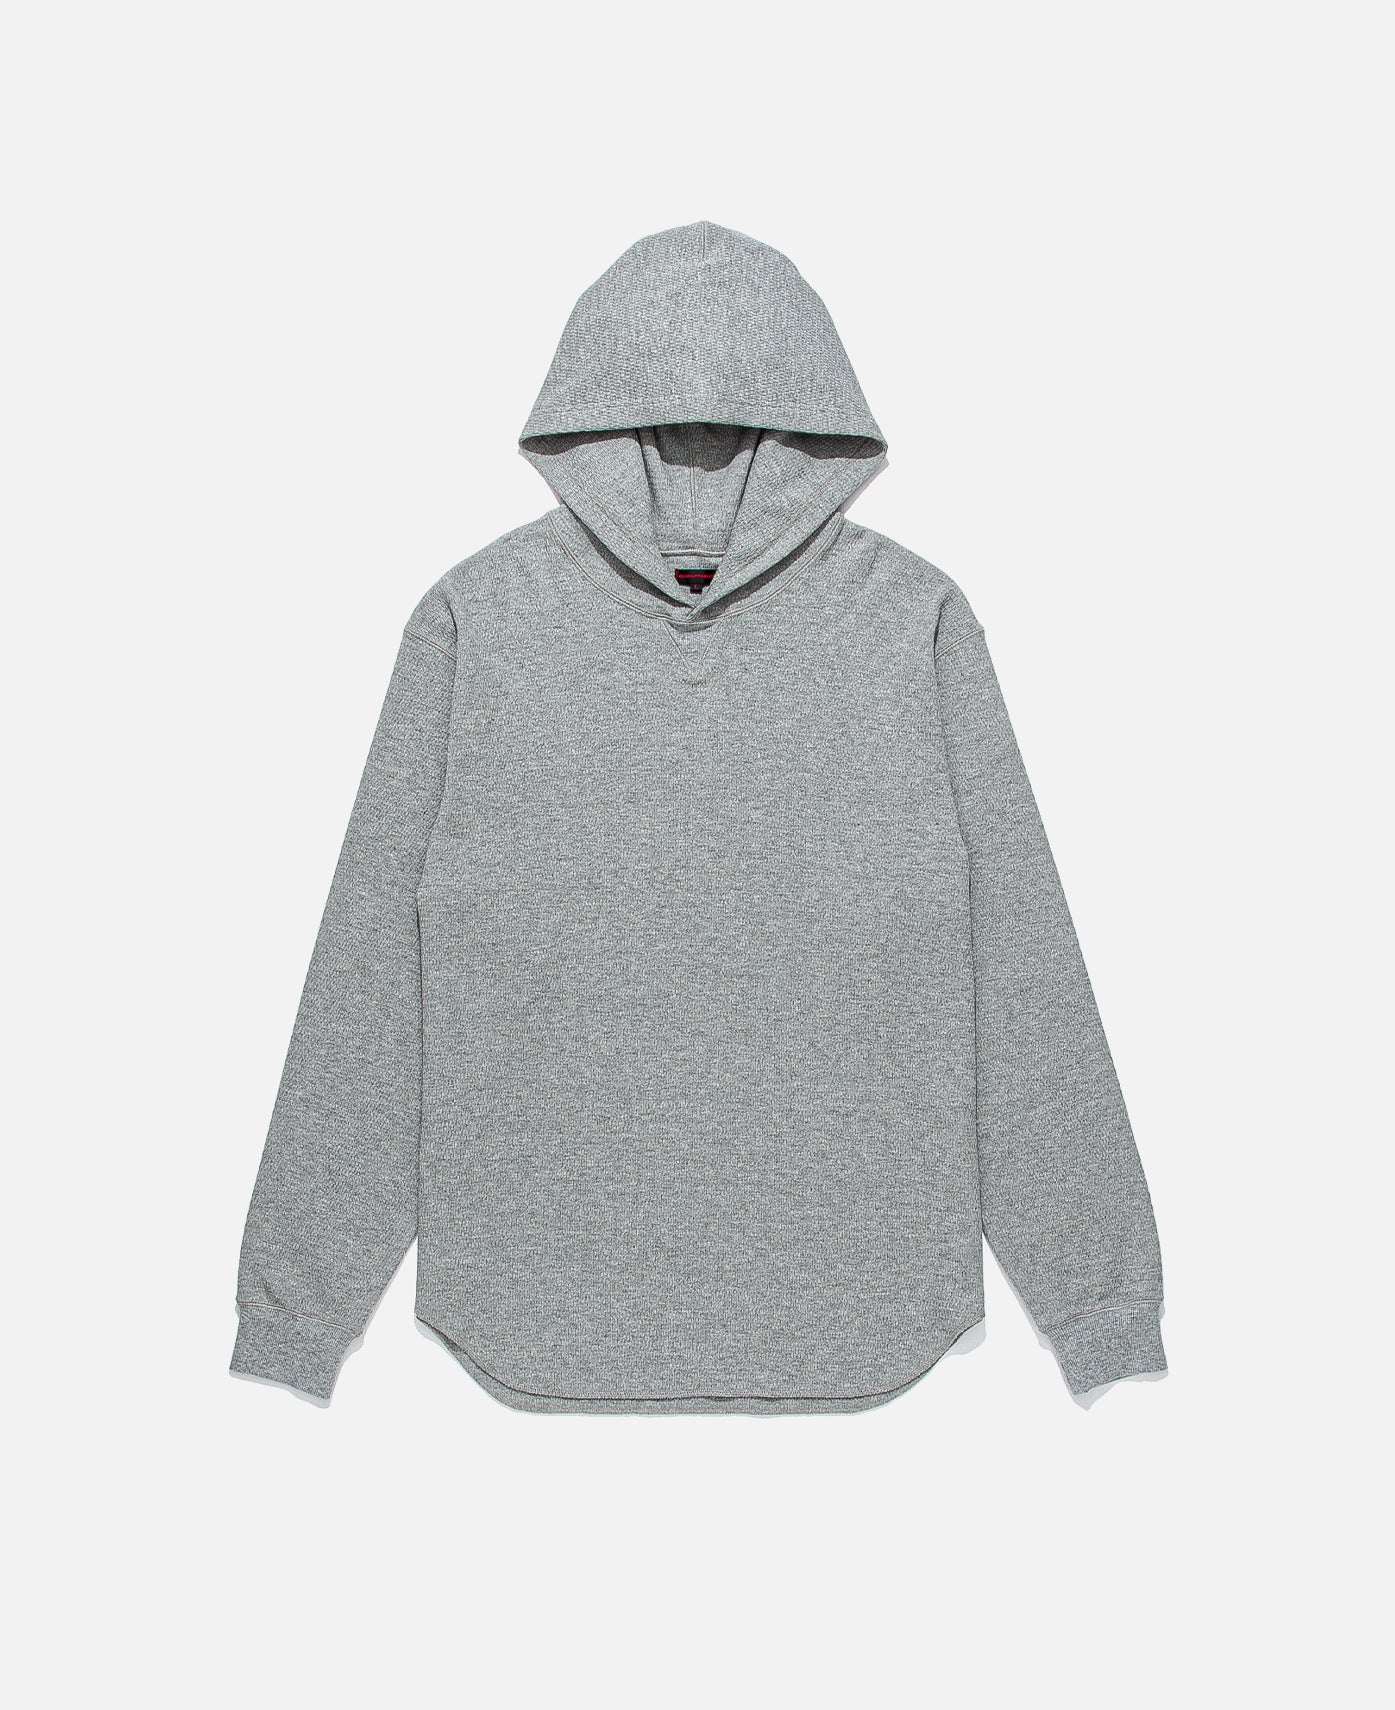 INNER PULLOVER THERMAL, GREY